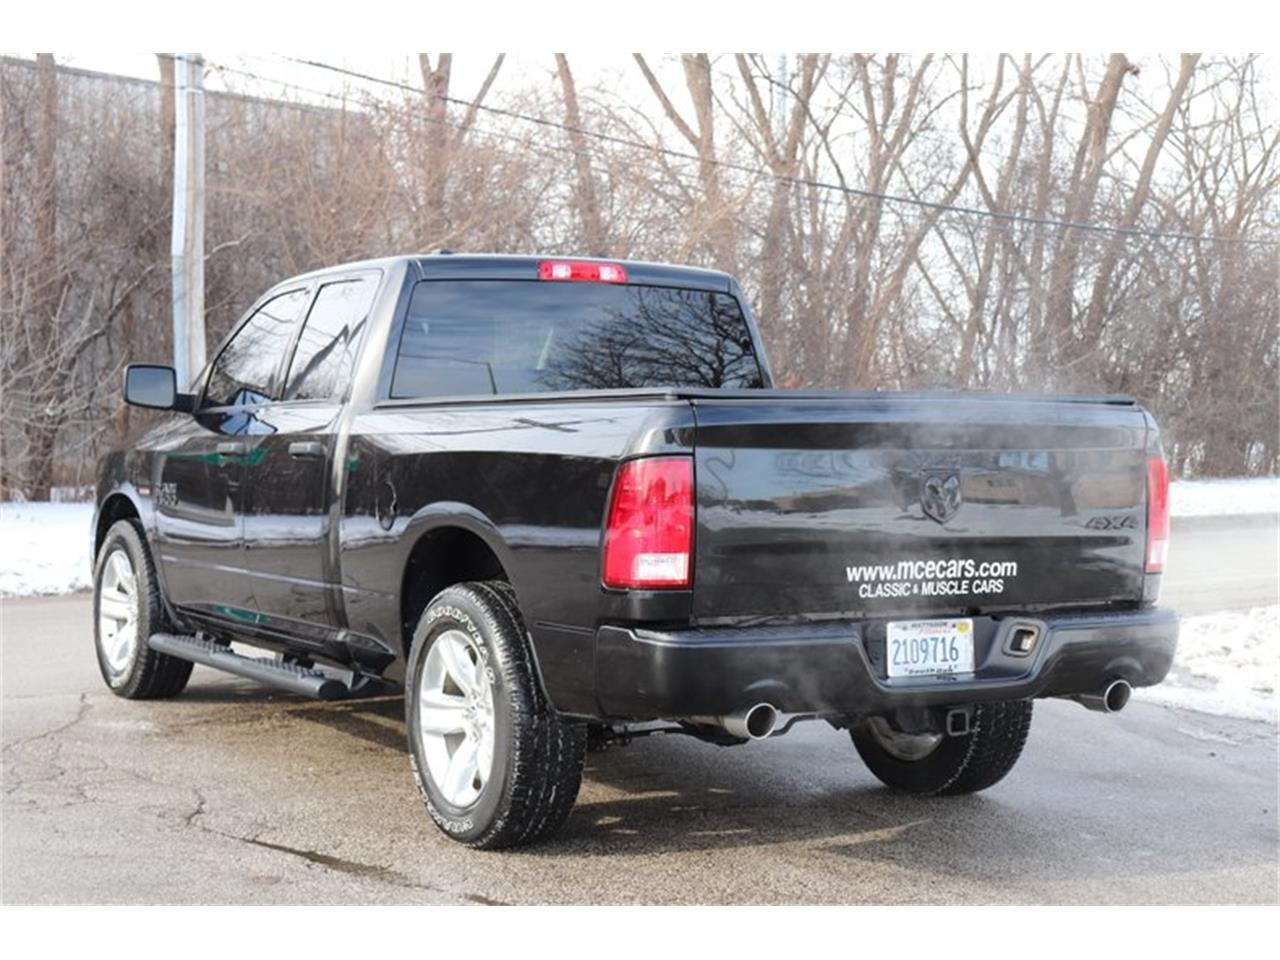 2015 Dodge Ram 1500 for sale in Alsip, IL – photo 2